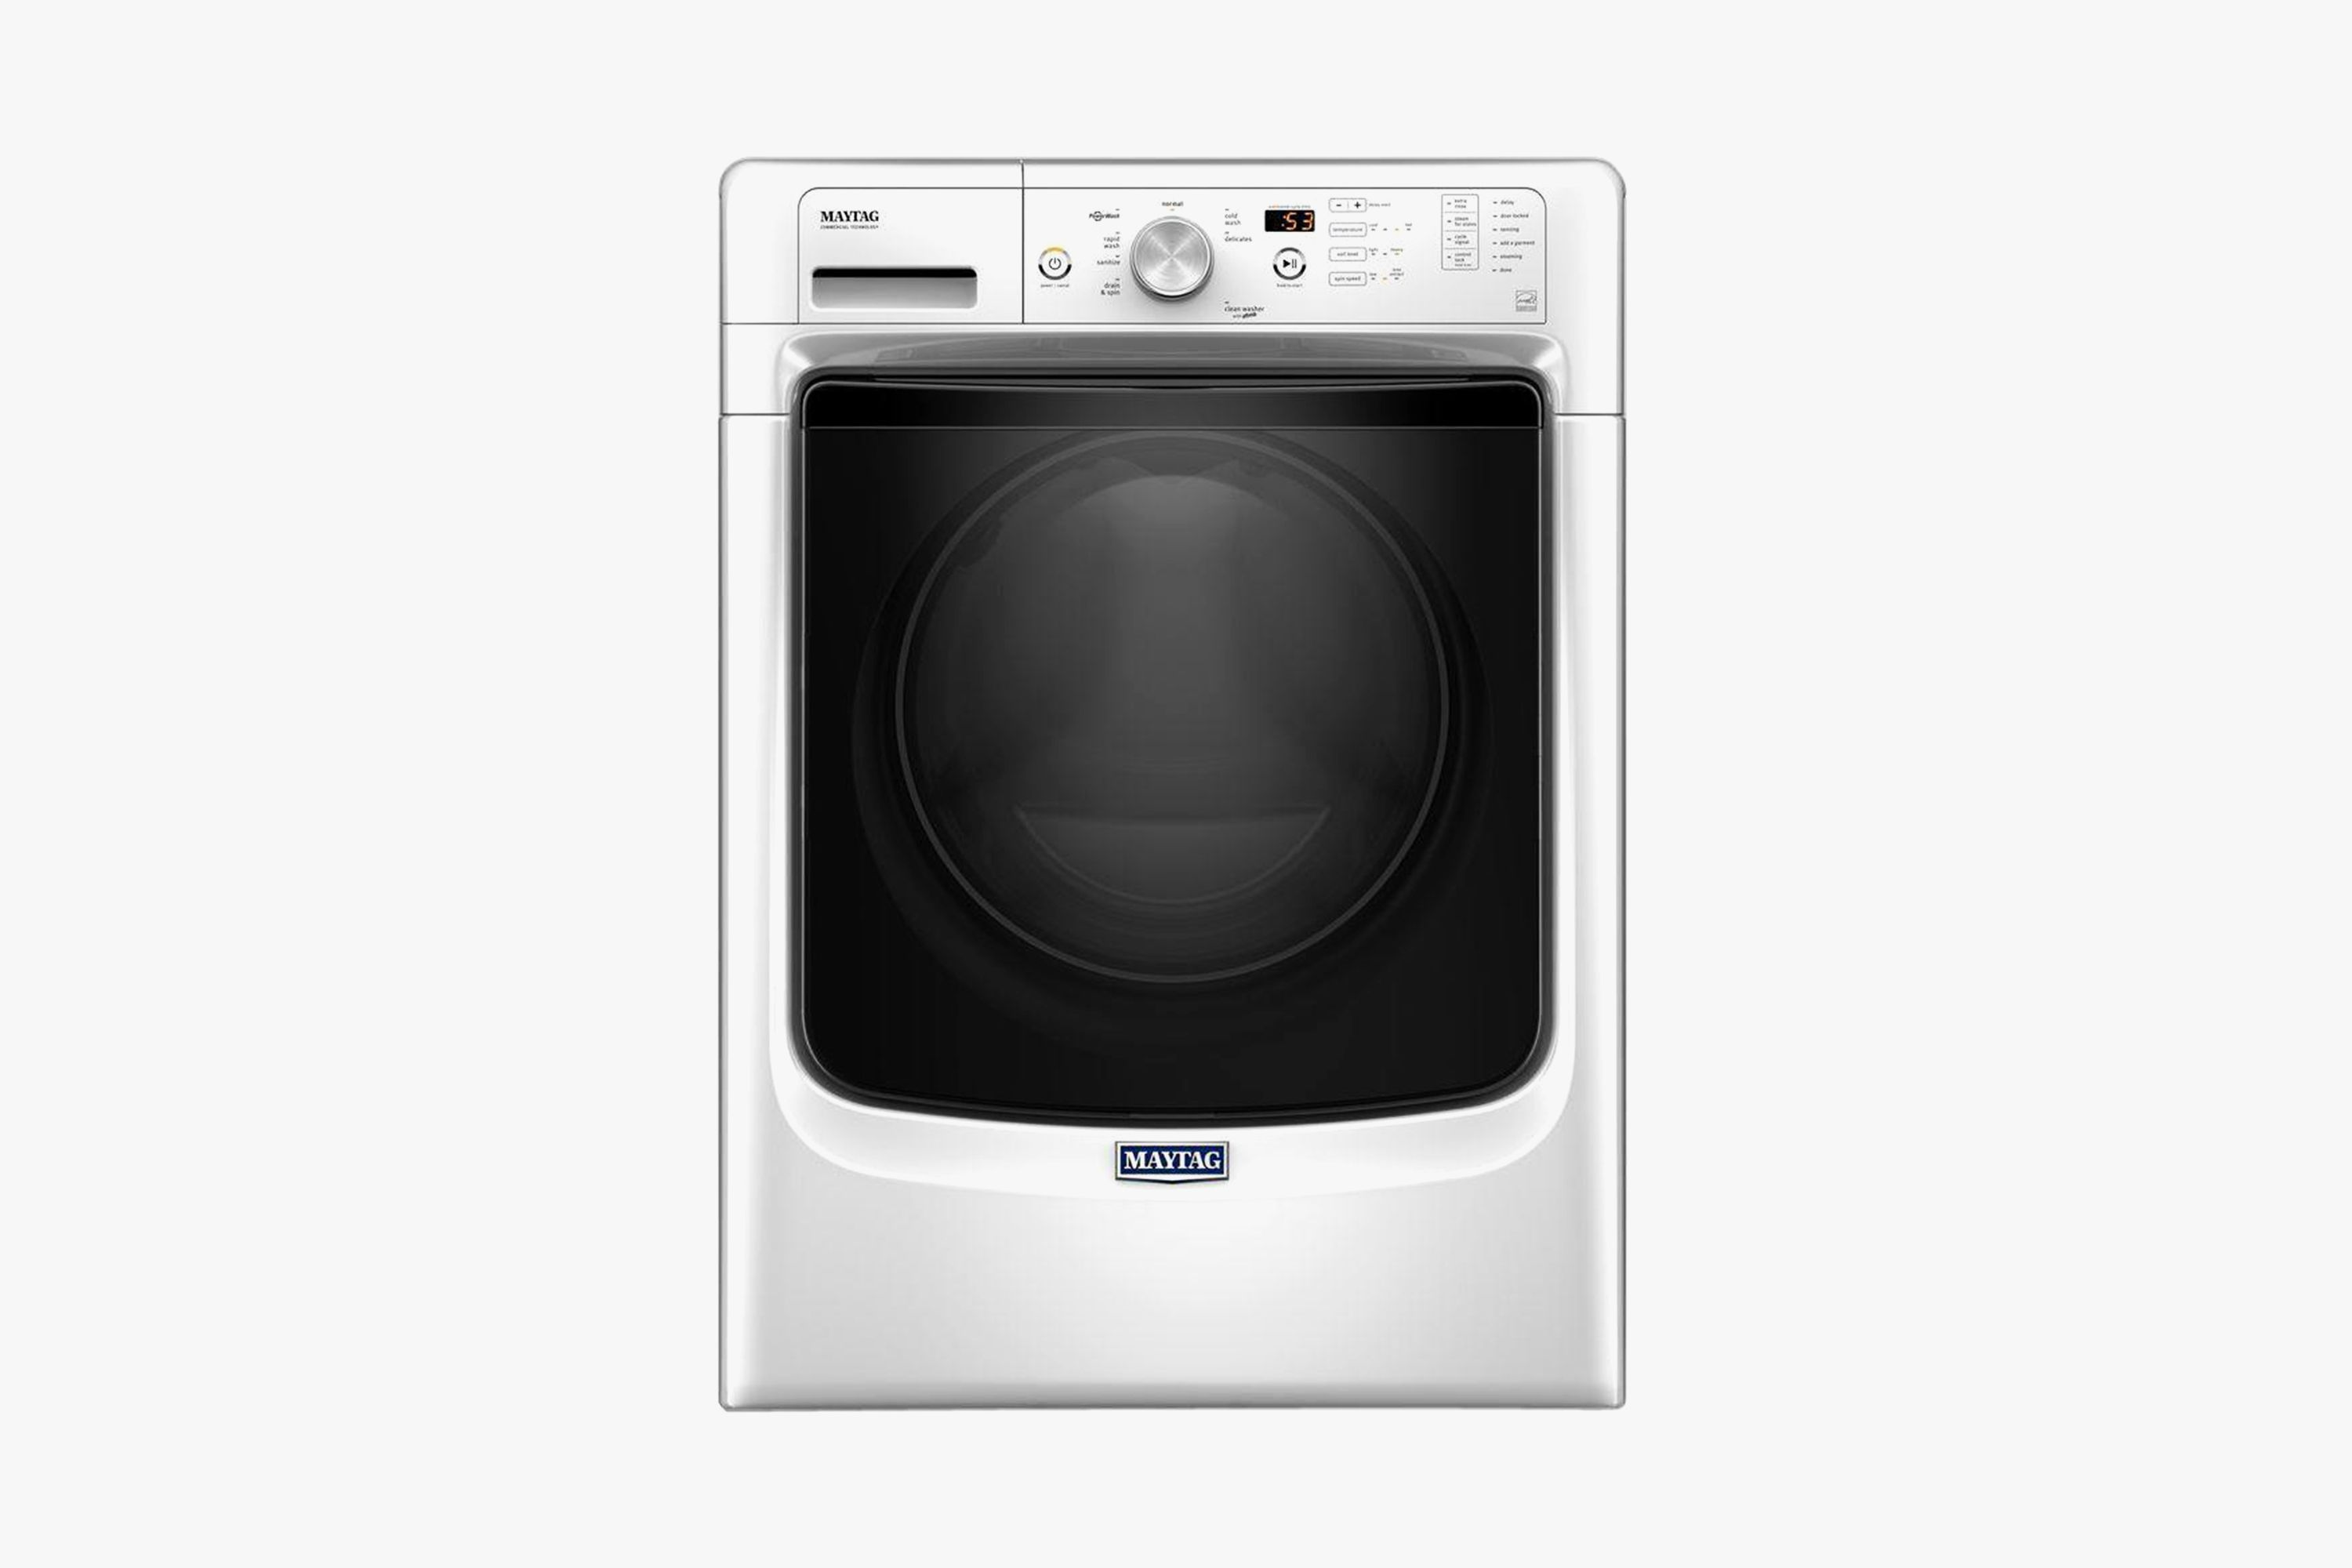 Best Top Loading Washing Machine >> 10 Best Washing Machines to Buy in 2019 - Top Rated Washing Machine Reviews